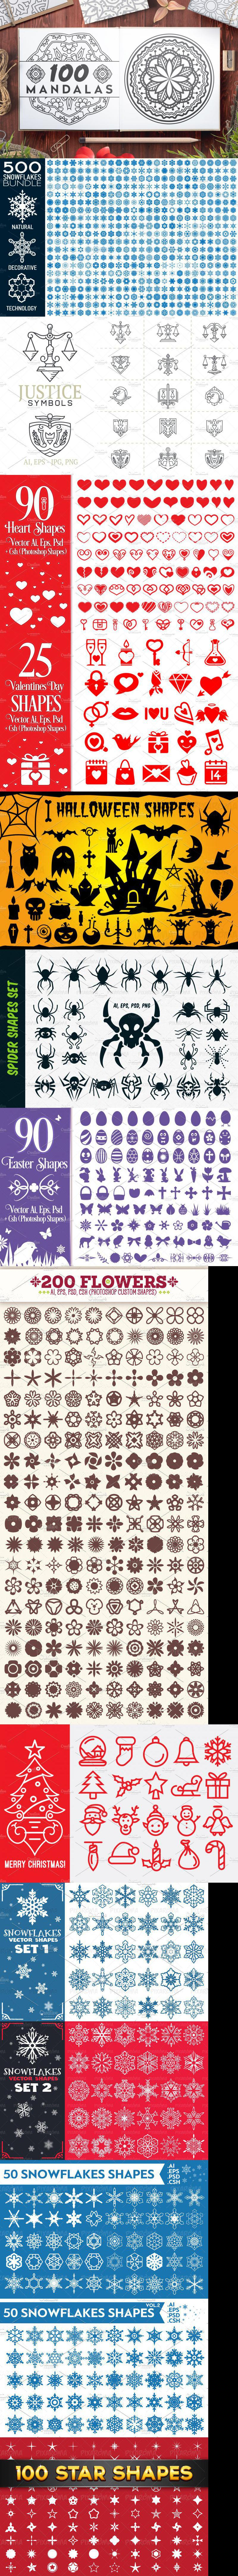 1400+ Vector Shapes Bundle